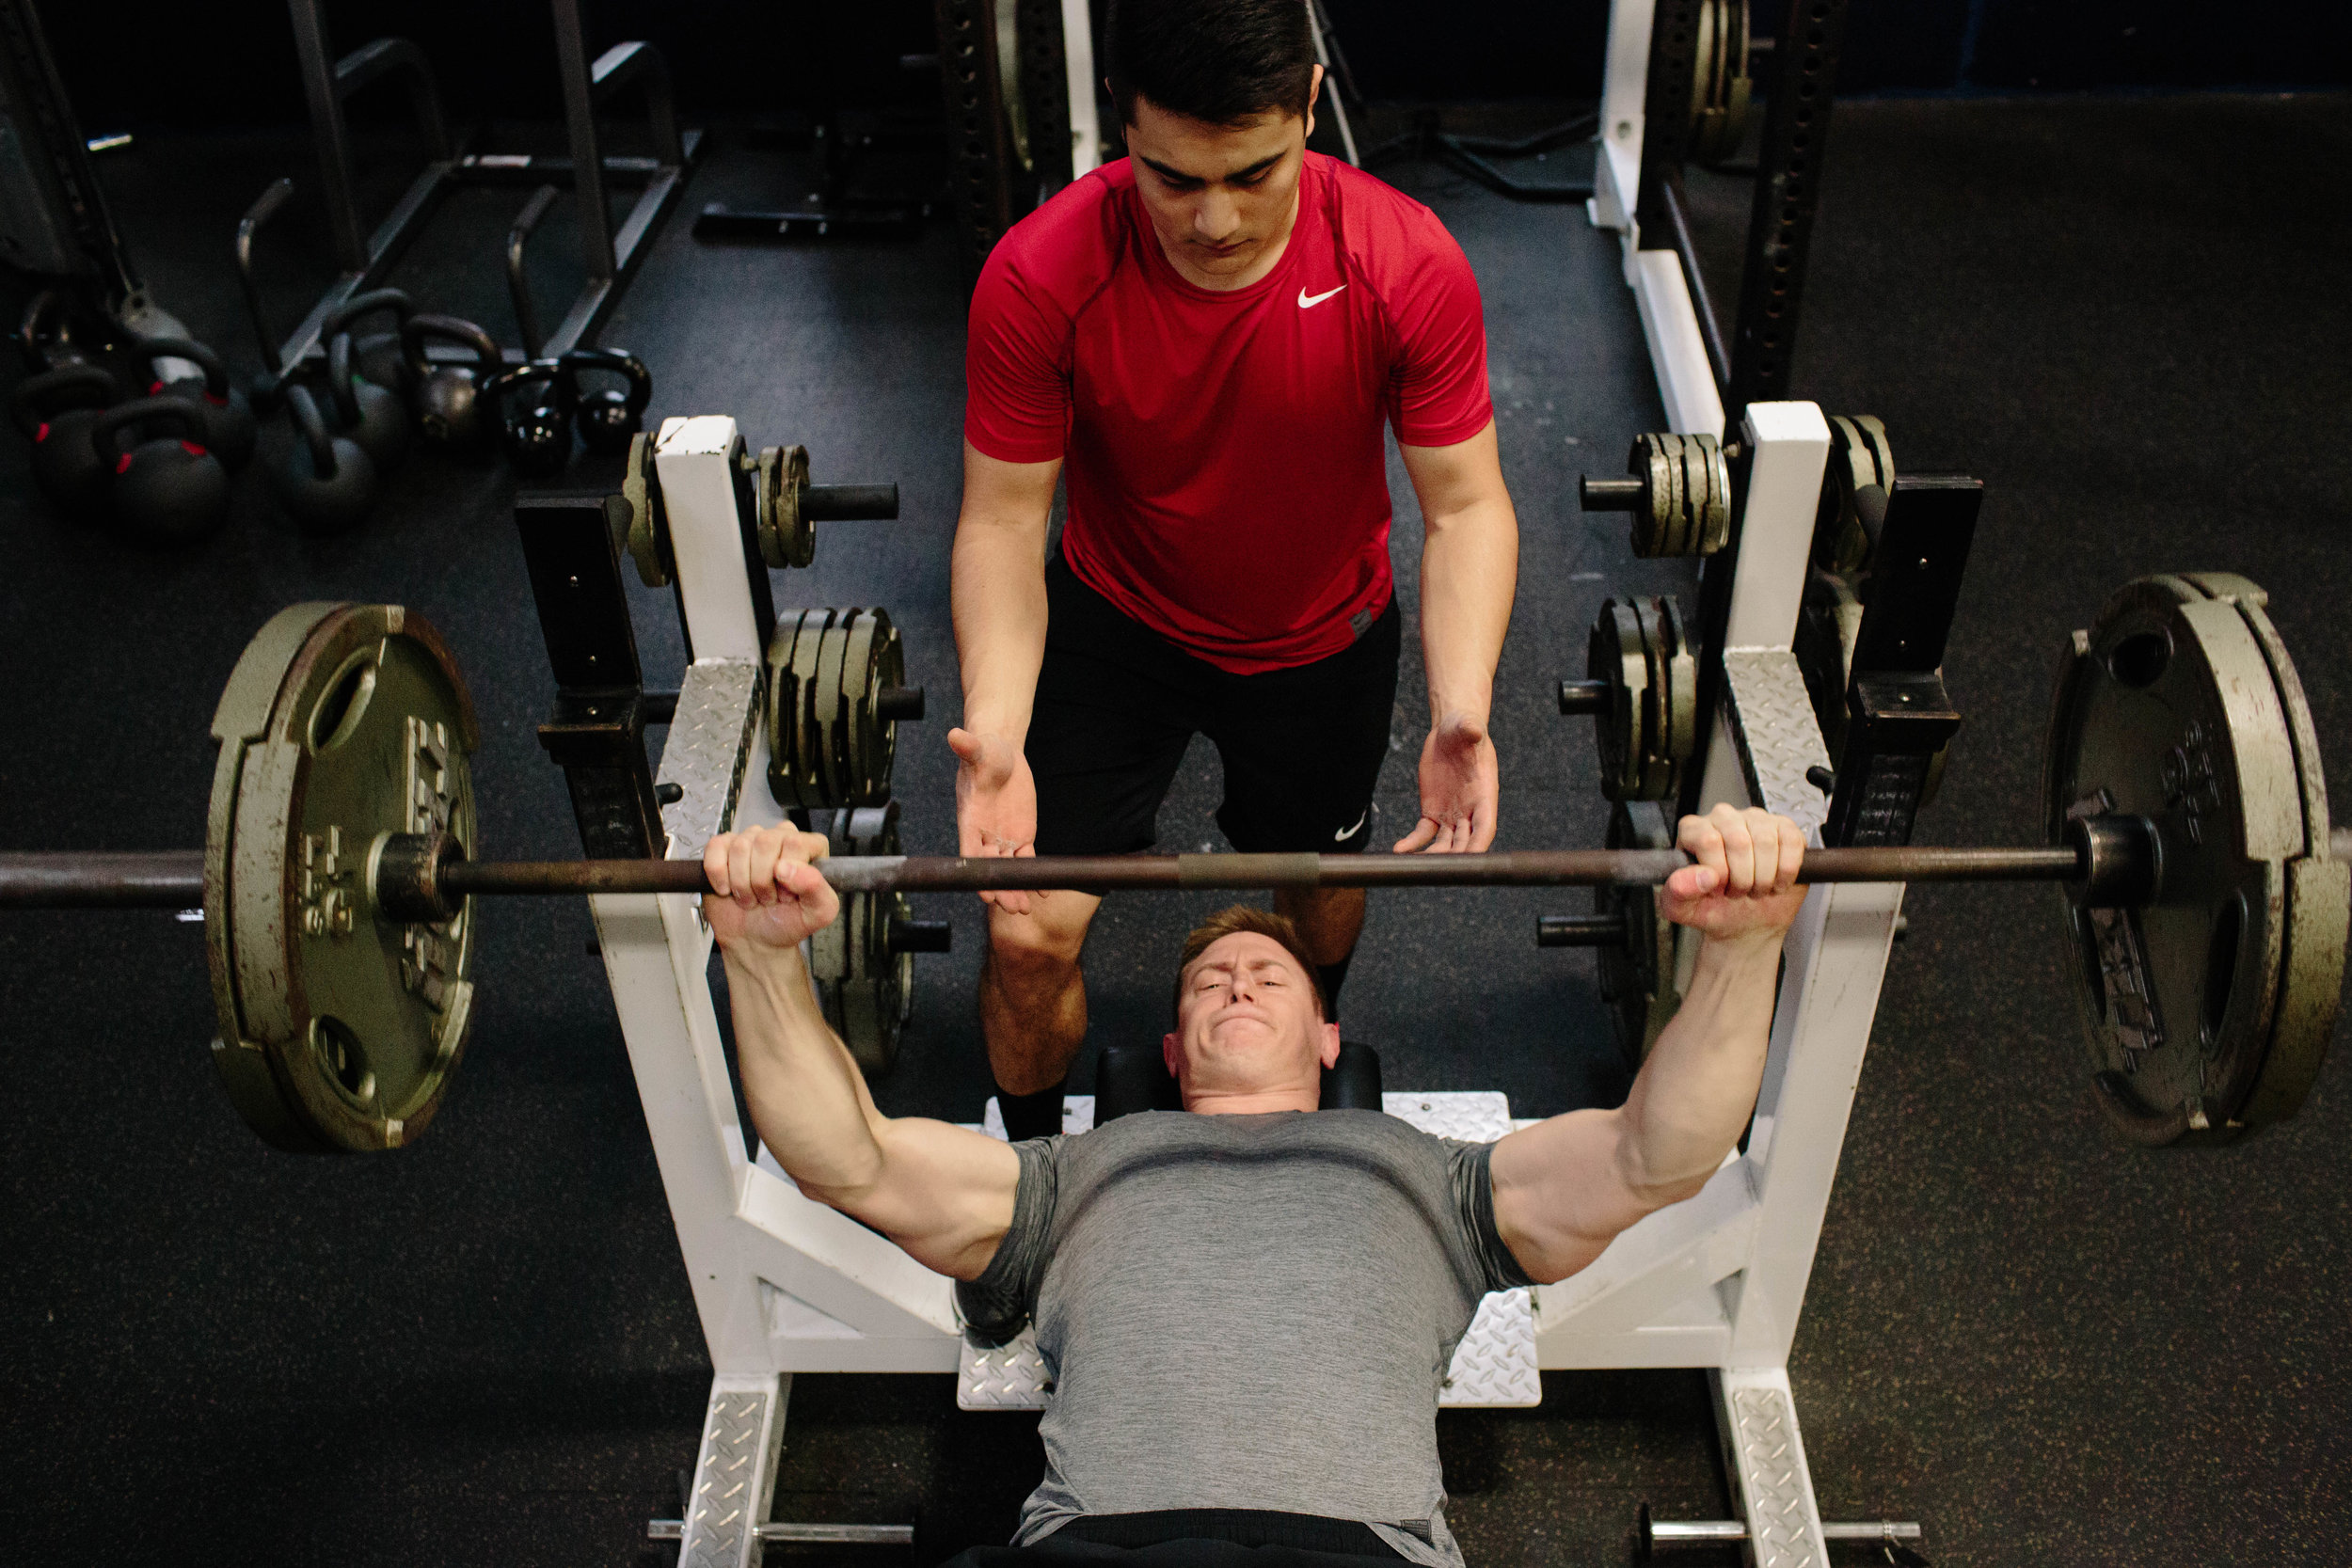 When spotting the bench press, the spotter should stand directly behind the athlete's head and help unrack/rack the bar, then track the path of the bar with both hands. Again, the spotter should only assist by touching the bar, not the athlete.